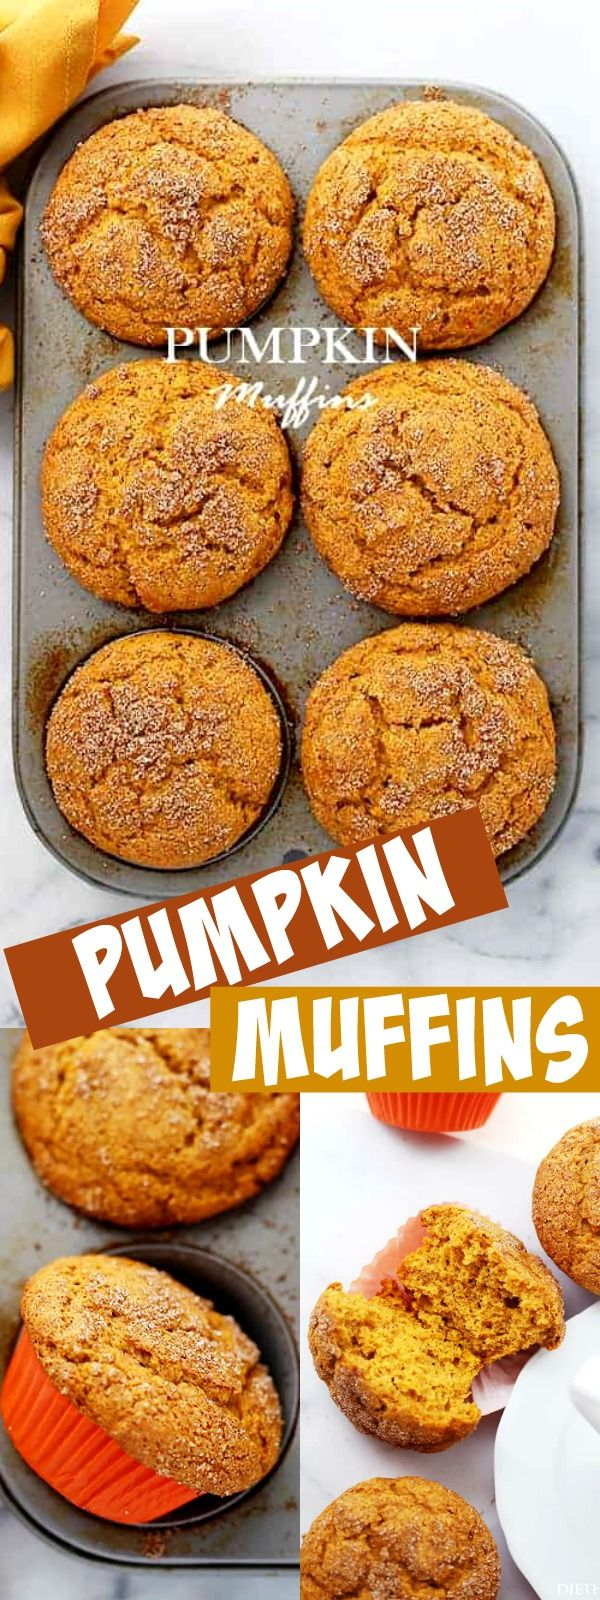 PUMPKIN MUFFINS! Pumpkin Muffins – Packed with pumpkin and topped with cinnamon sugar, these Pumpkin Muffins are soft, fluffy, super moist, and absolutely delicious! The best we've ever made. #pumpkinmuffins